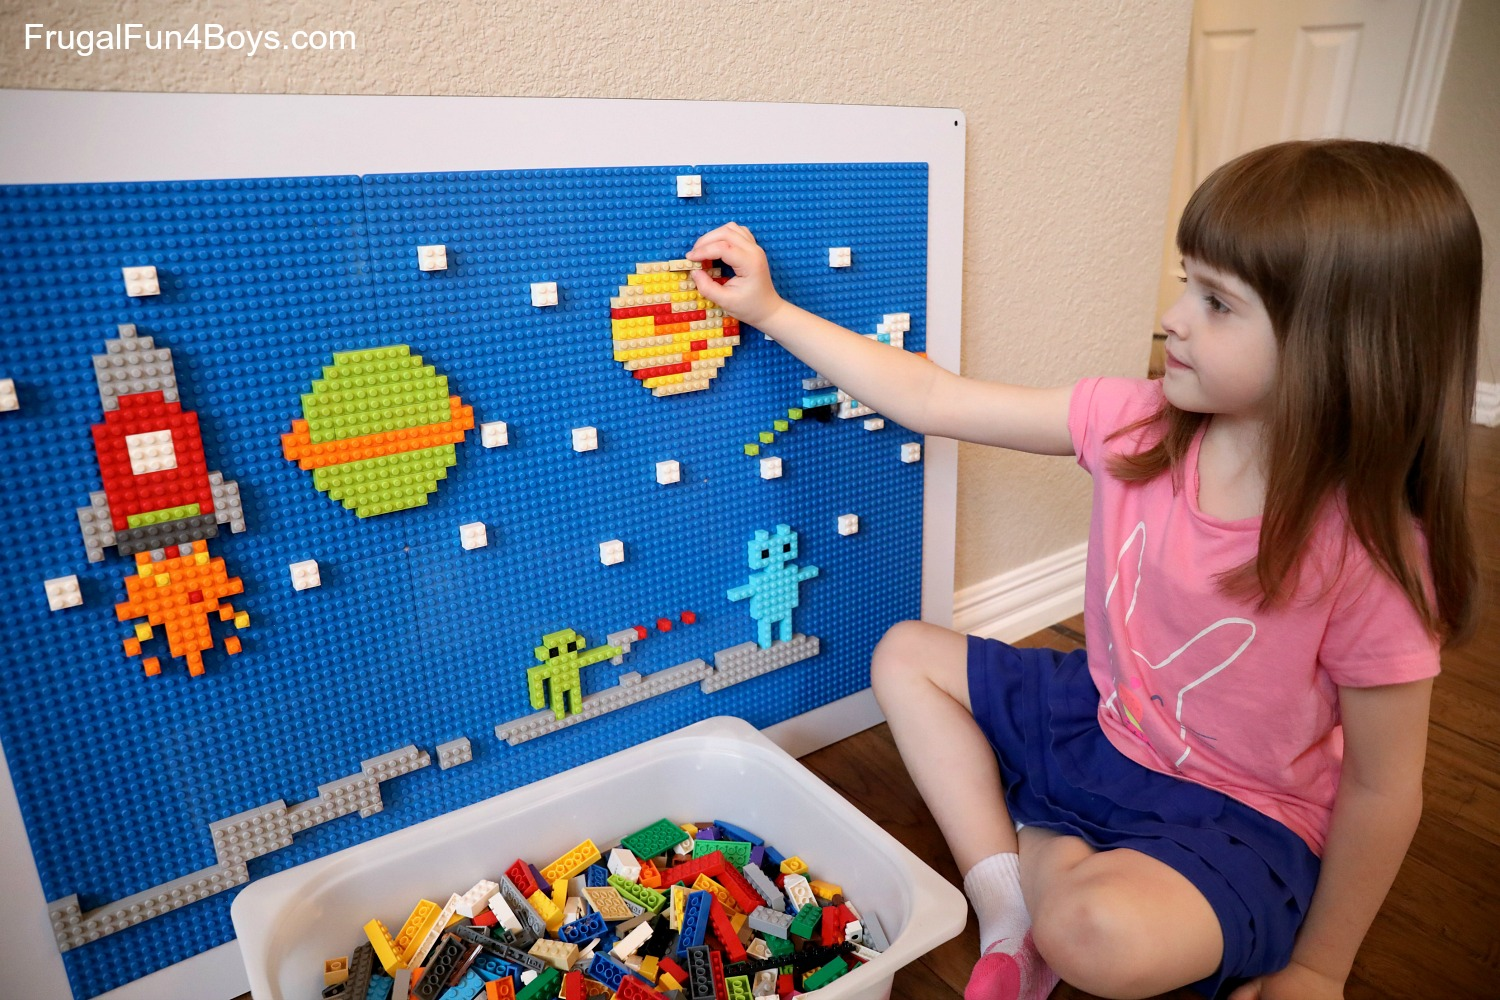 Lego wall with space scene